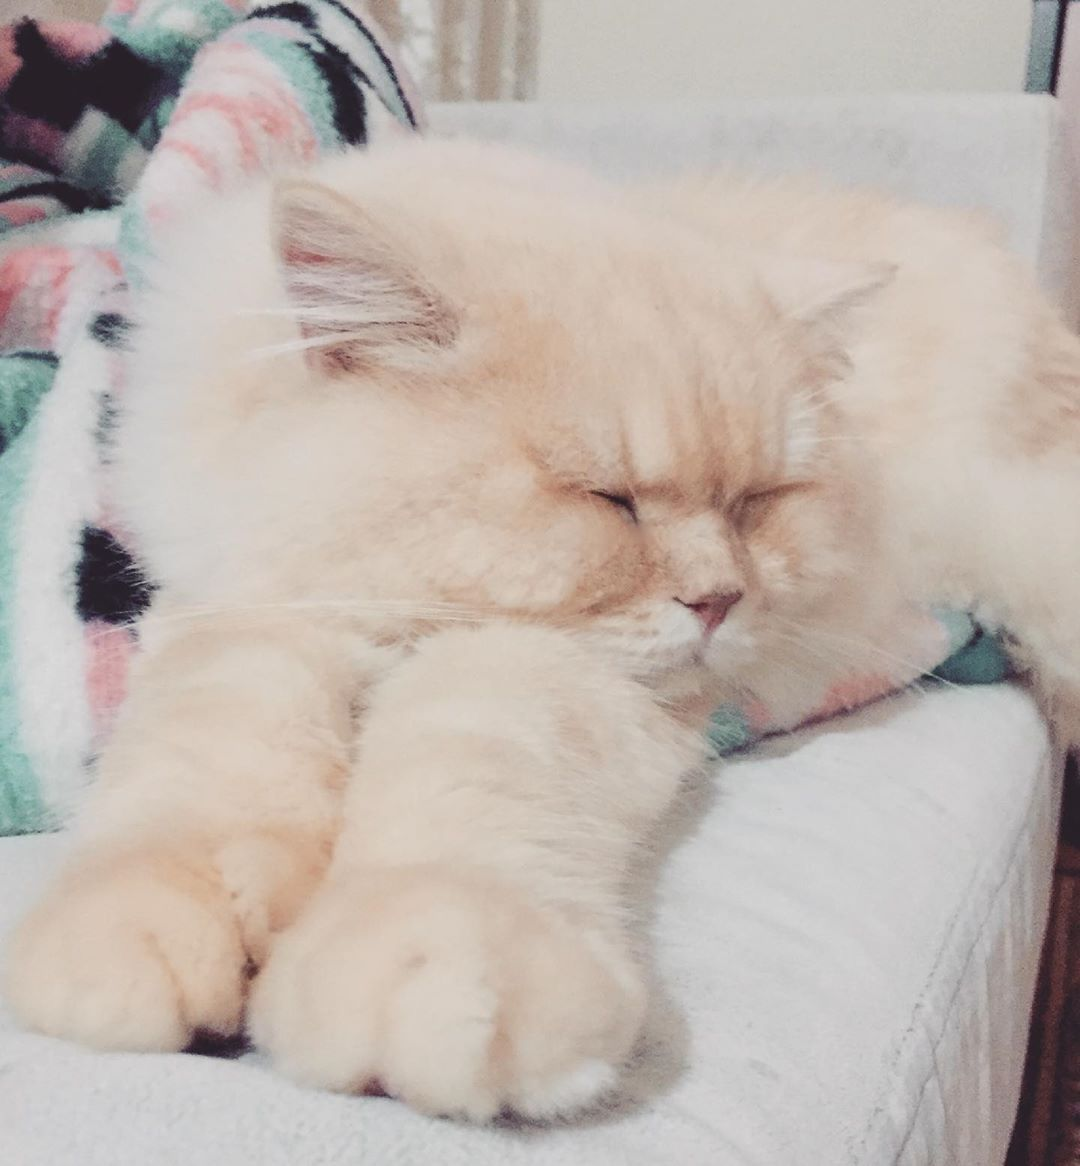 Koca patilim 🥰#amazing #followme #all_shots #textgram #family #instago #igaddict #awesome #girls #instagood #my #bored #baby #music #red #green #water #harrystyles #bestoftheday #black #party #white #yum #flower #2020 #night #instalove #cat